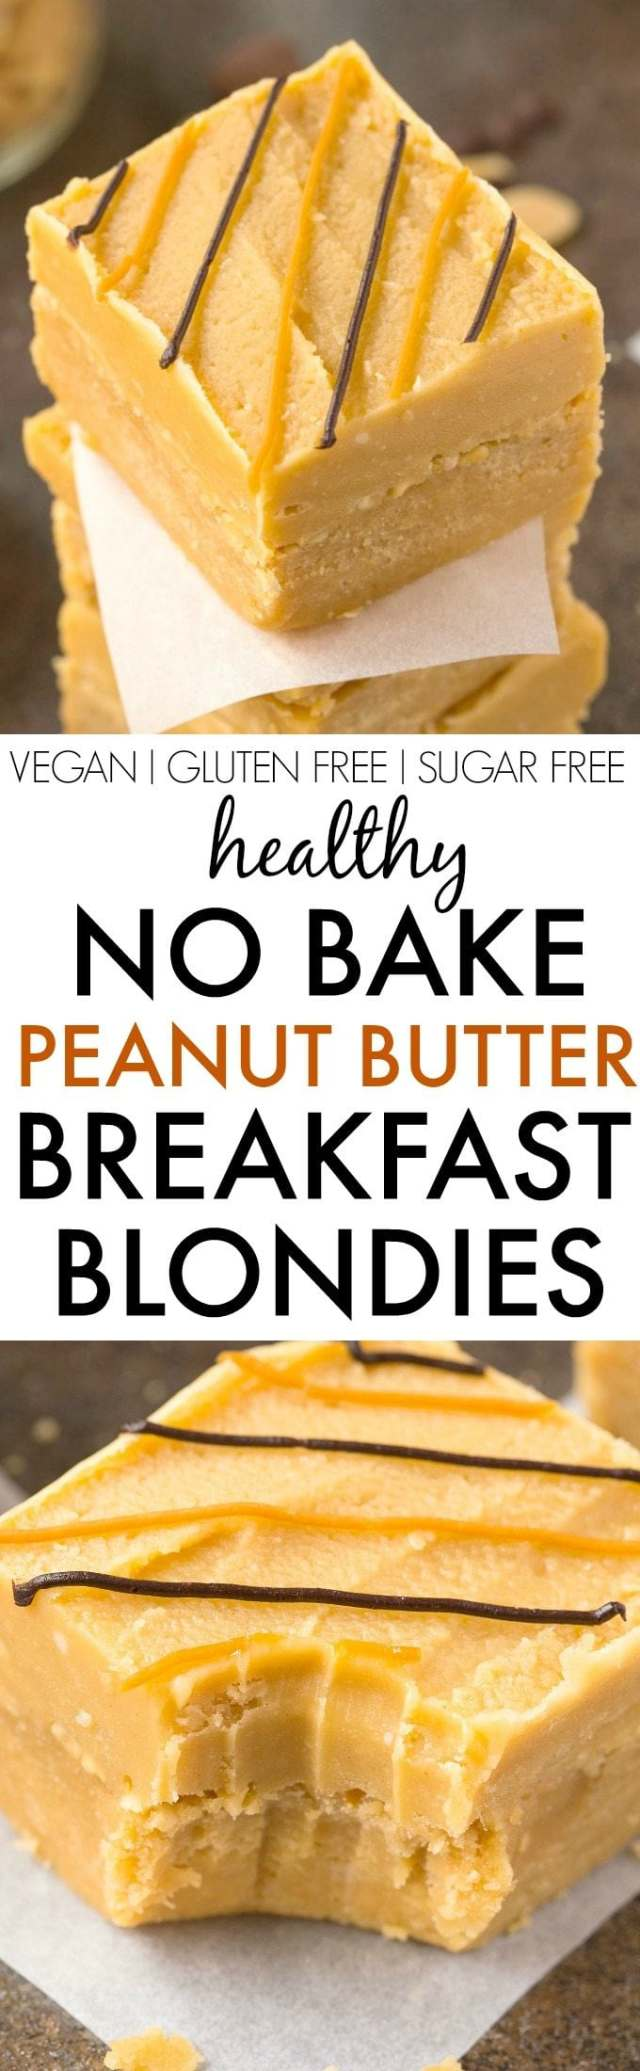 Healthy NO BAKE Peanut Butter BREAKFAST Blondies- Thick, chewy and like having dessert for breakfast but healthy- NO nasties and packed with protein- Nut free and peanut free option too! {vegan, gluten free, paleo recipe}- thebigmansworld.com